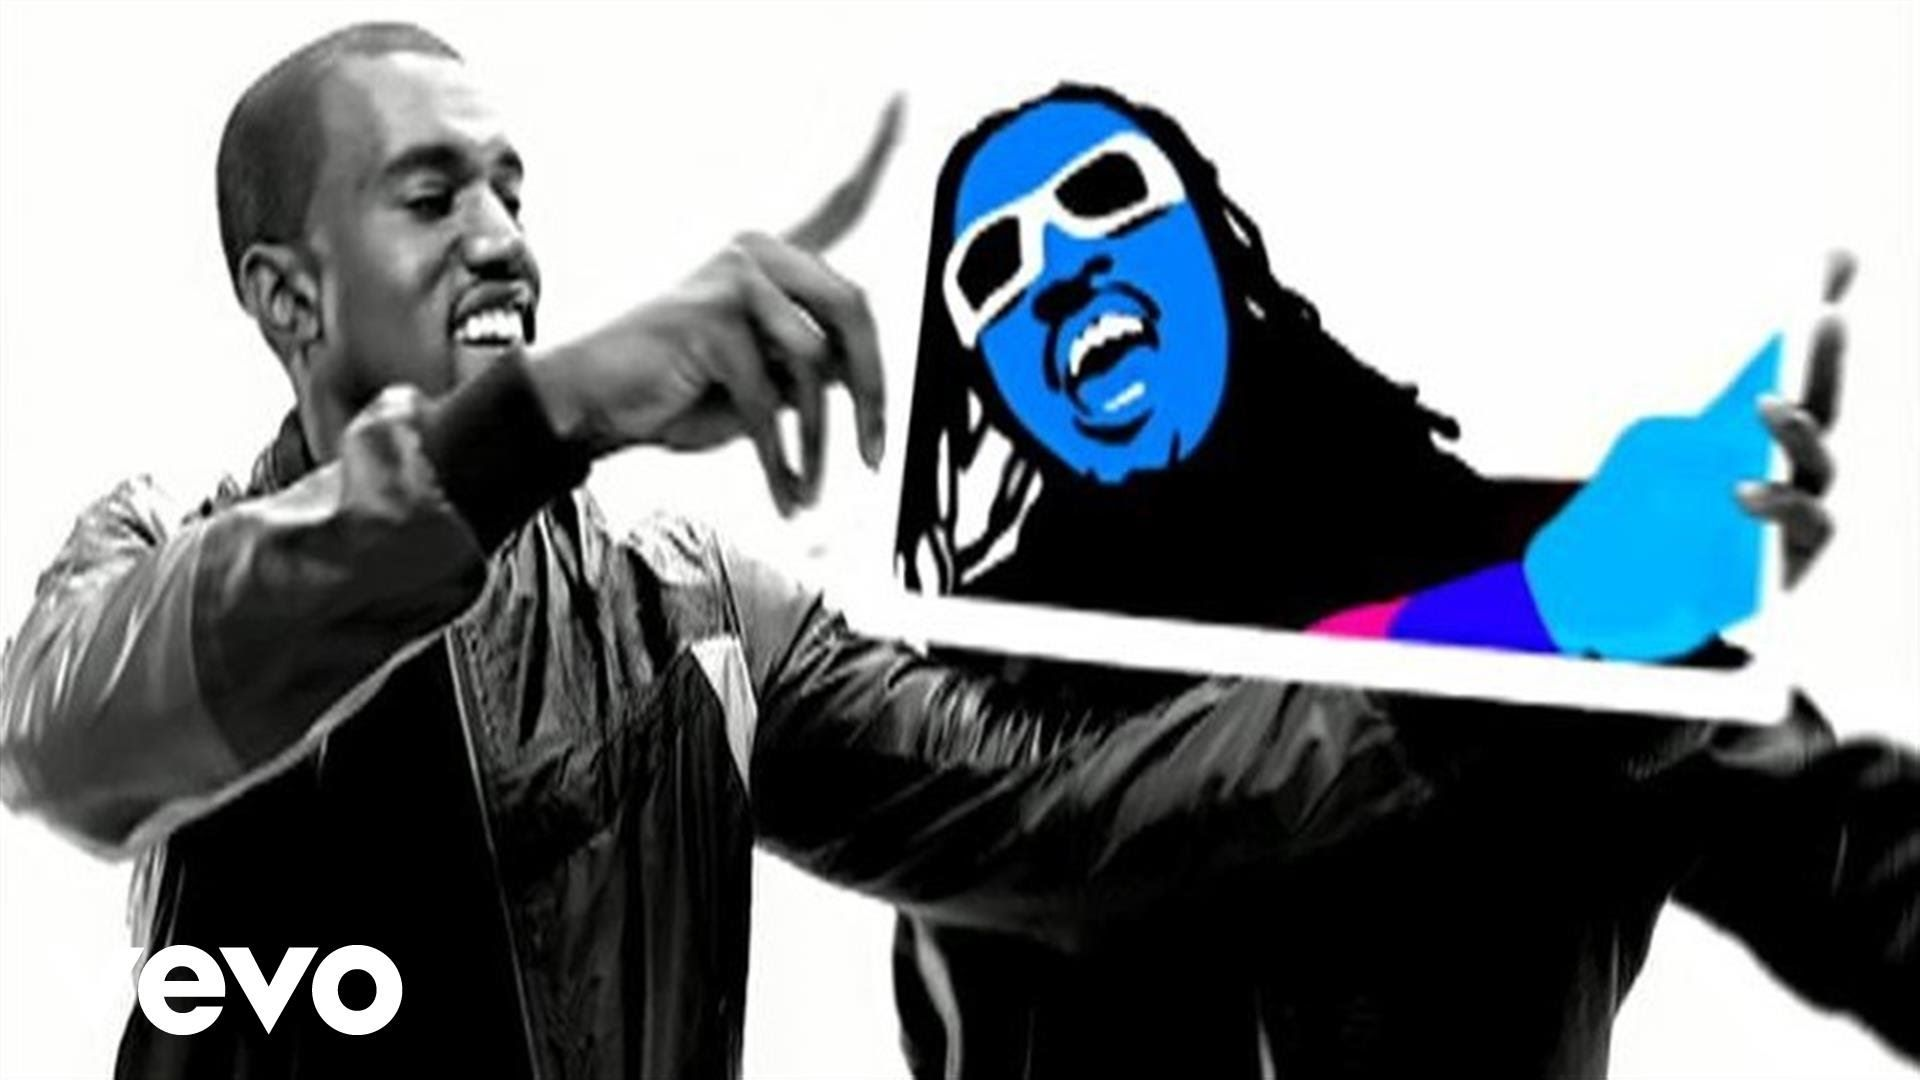 Music video by Kanye West performing Good Life. (C) 2007 Roc-A-Fella Records, LLC